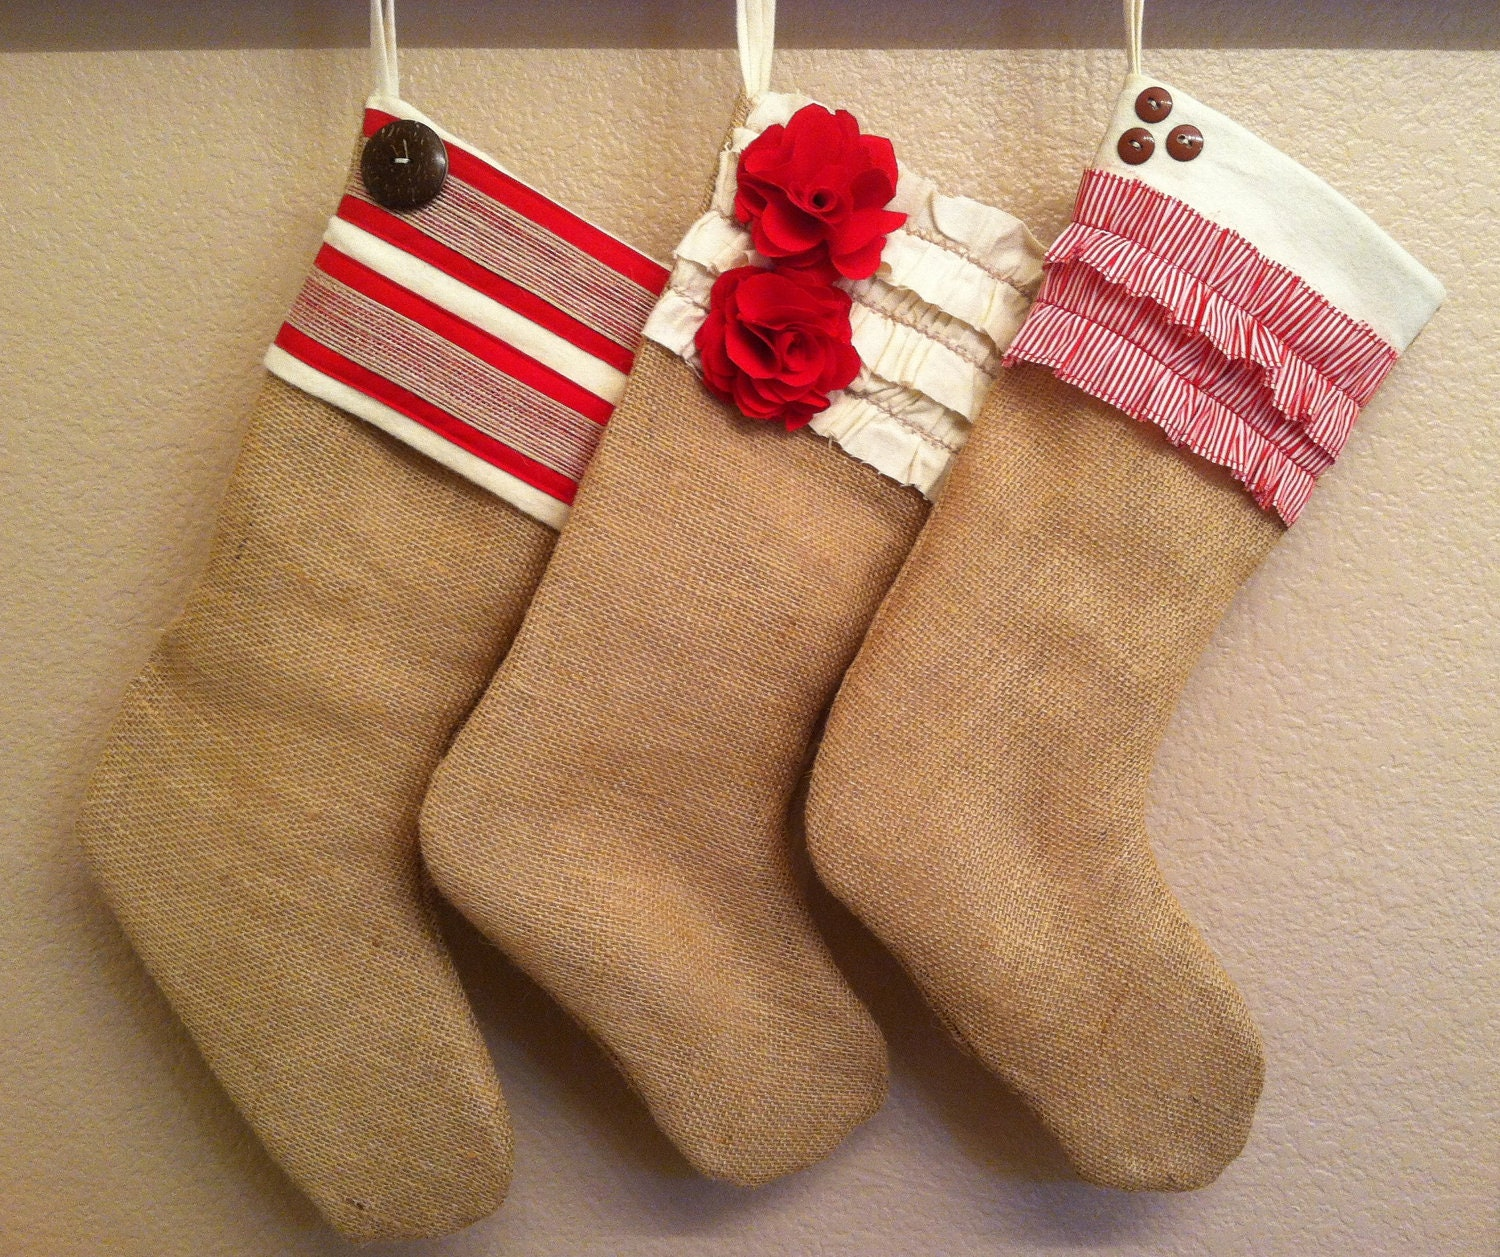 Christmas Stocking Design Ideas 15 diy christmas stockings how to make christmas stockings craft ideas womans day Like This Item